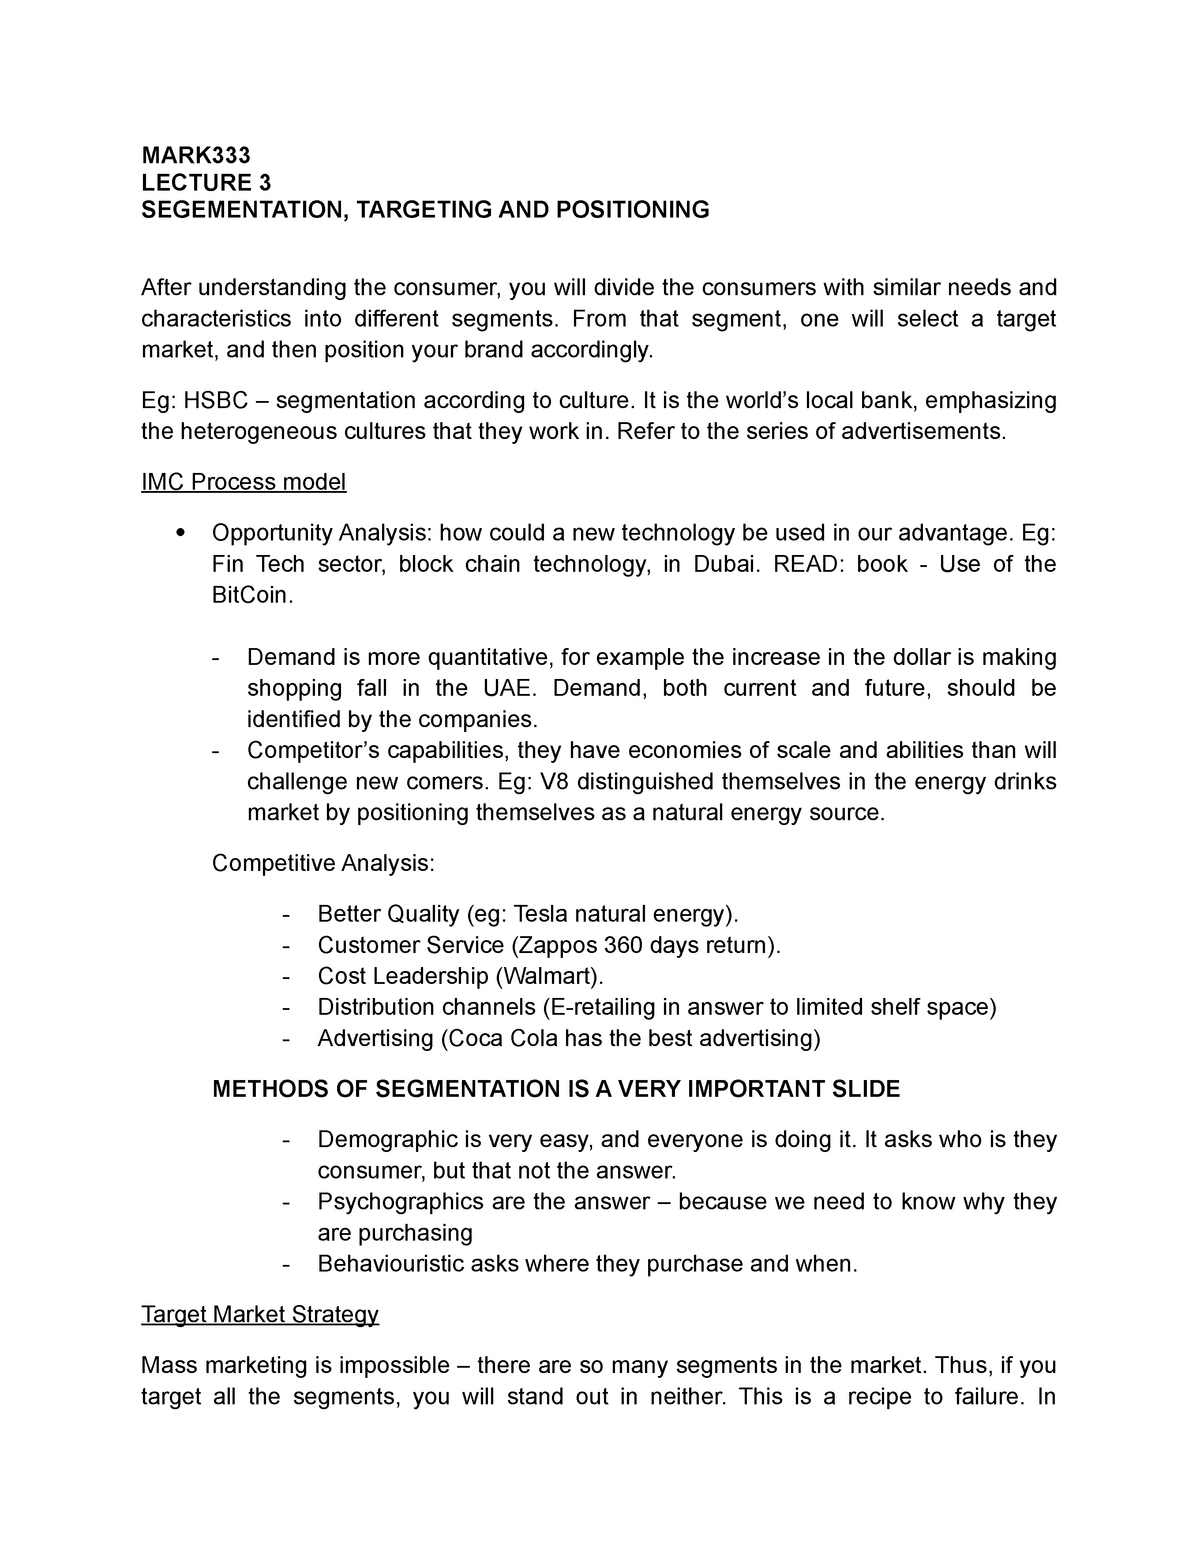 Lecture notes - Segmentation and Positioning - Integrated